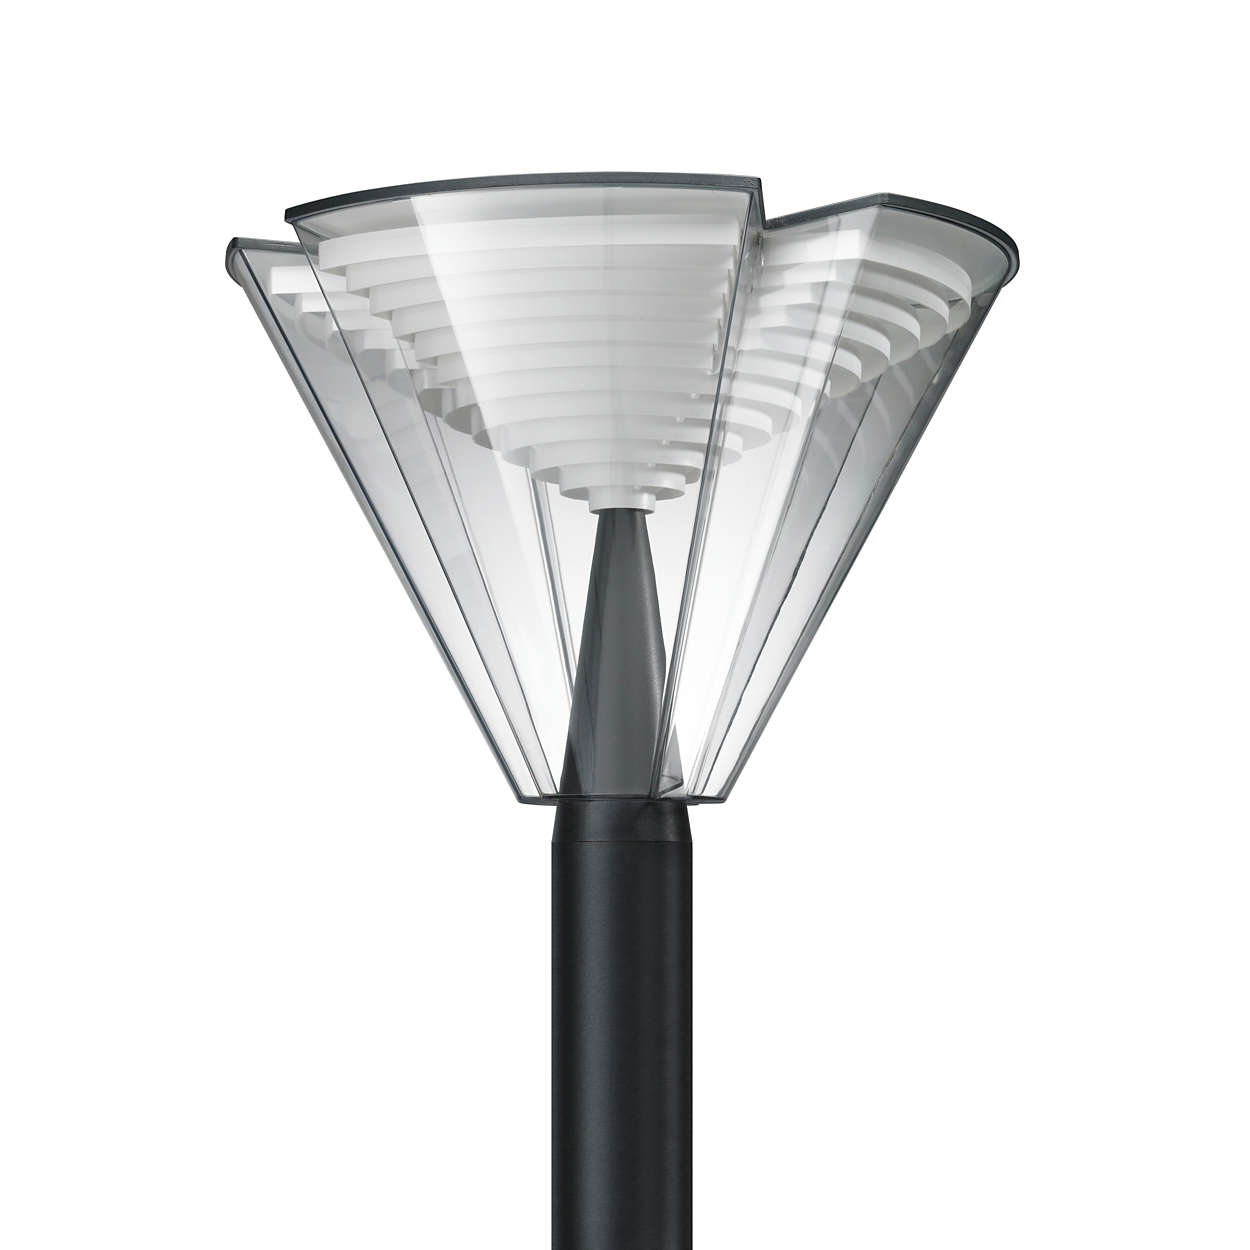 ParkView LED – en flexibel armatur för parker